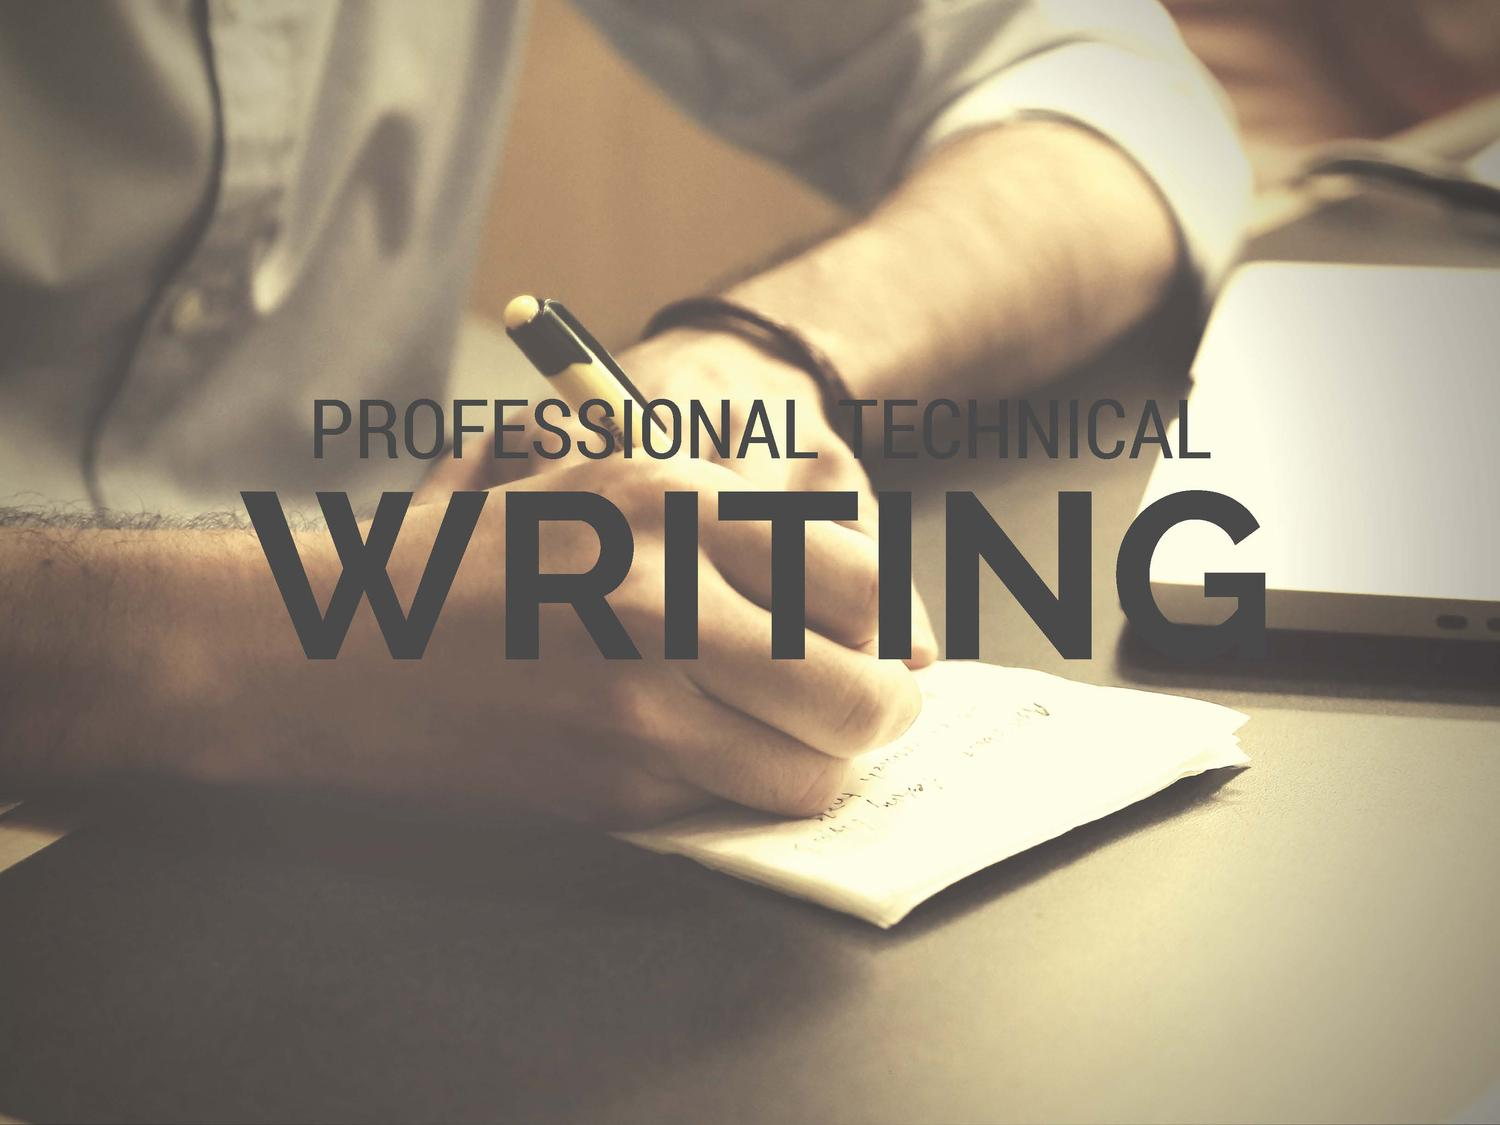 Professional Technical Writing by cocanojm - 73745